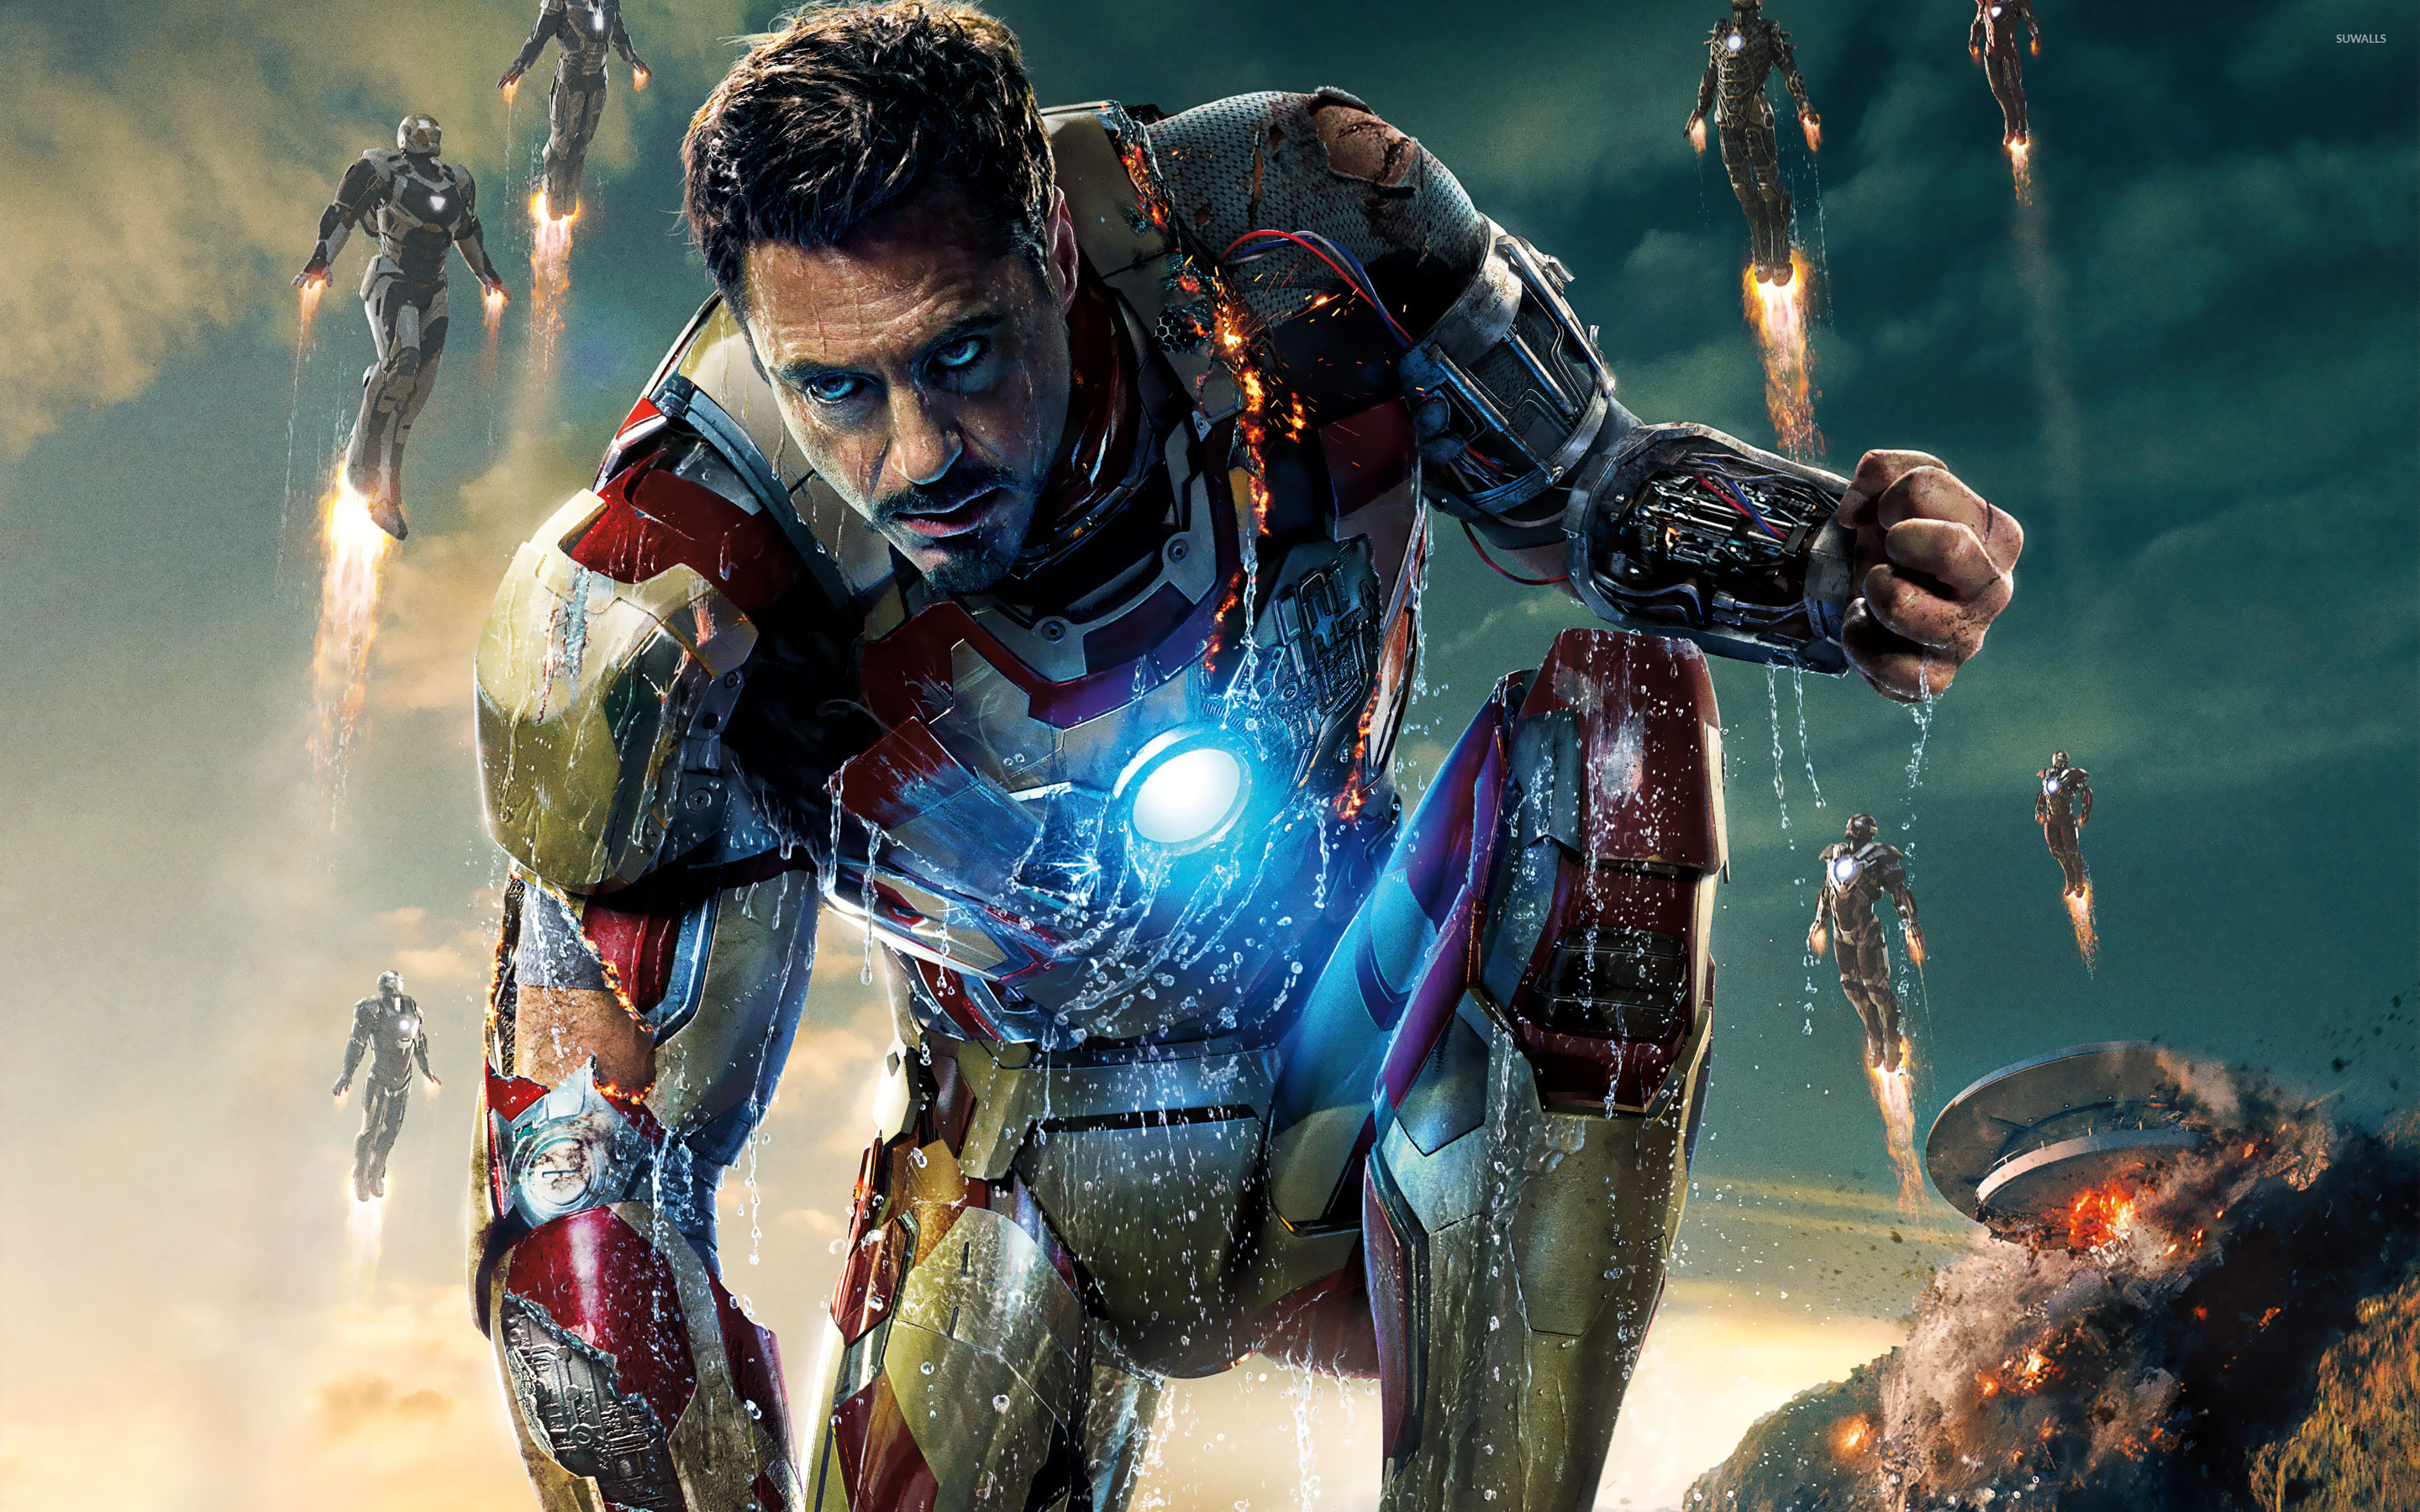 iron man 3 wallpaper - movie wallpapers - #19233